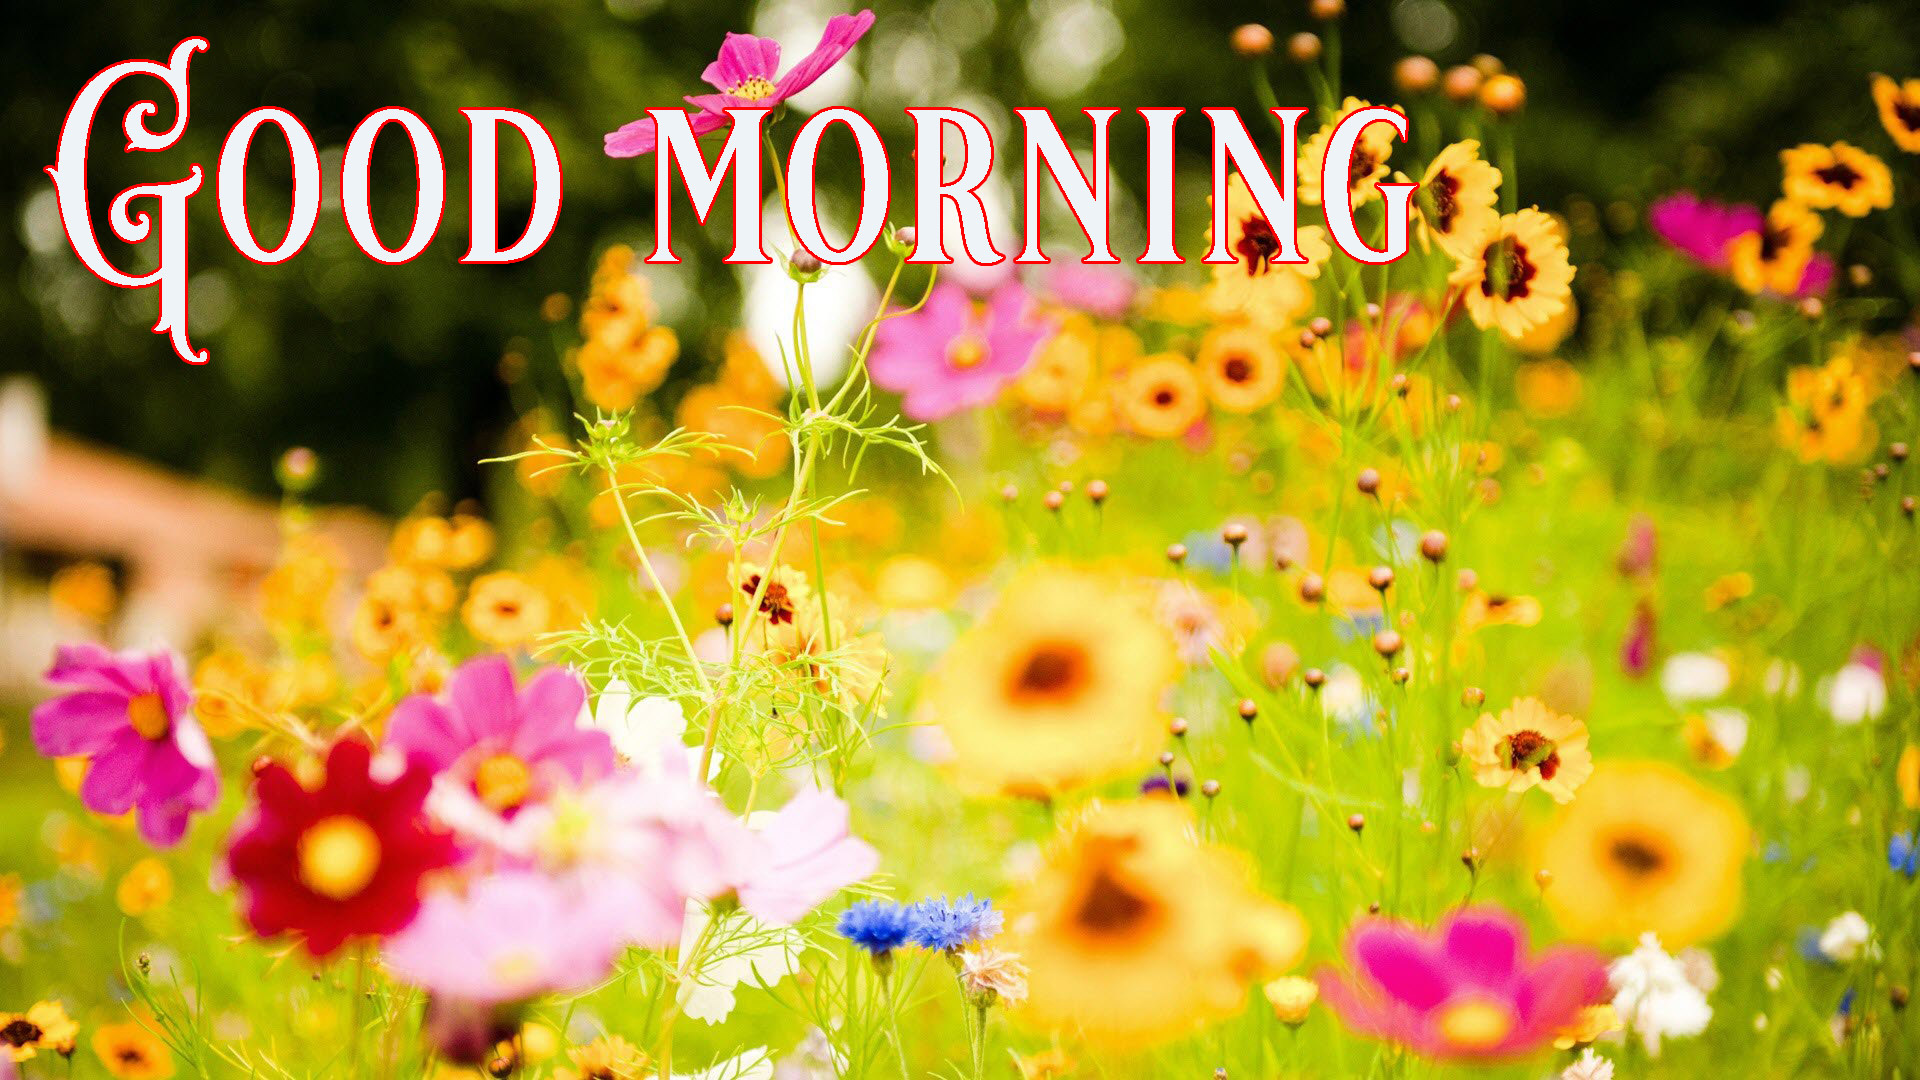 good morning Images for facebook tumblr pinterest and twitter Wallpaper Pics HD For Whatsapp